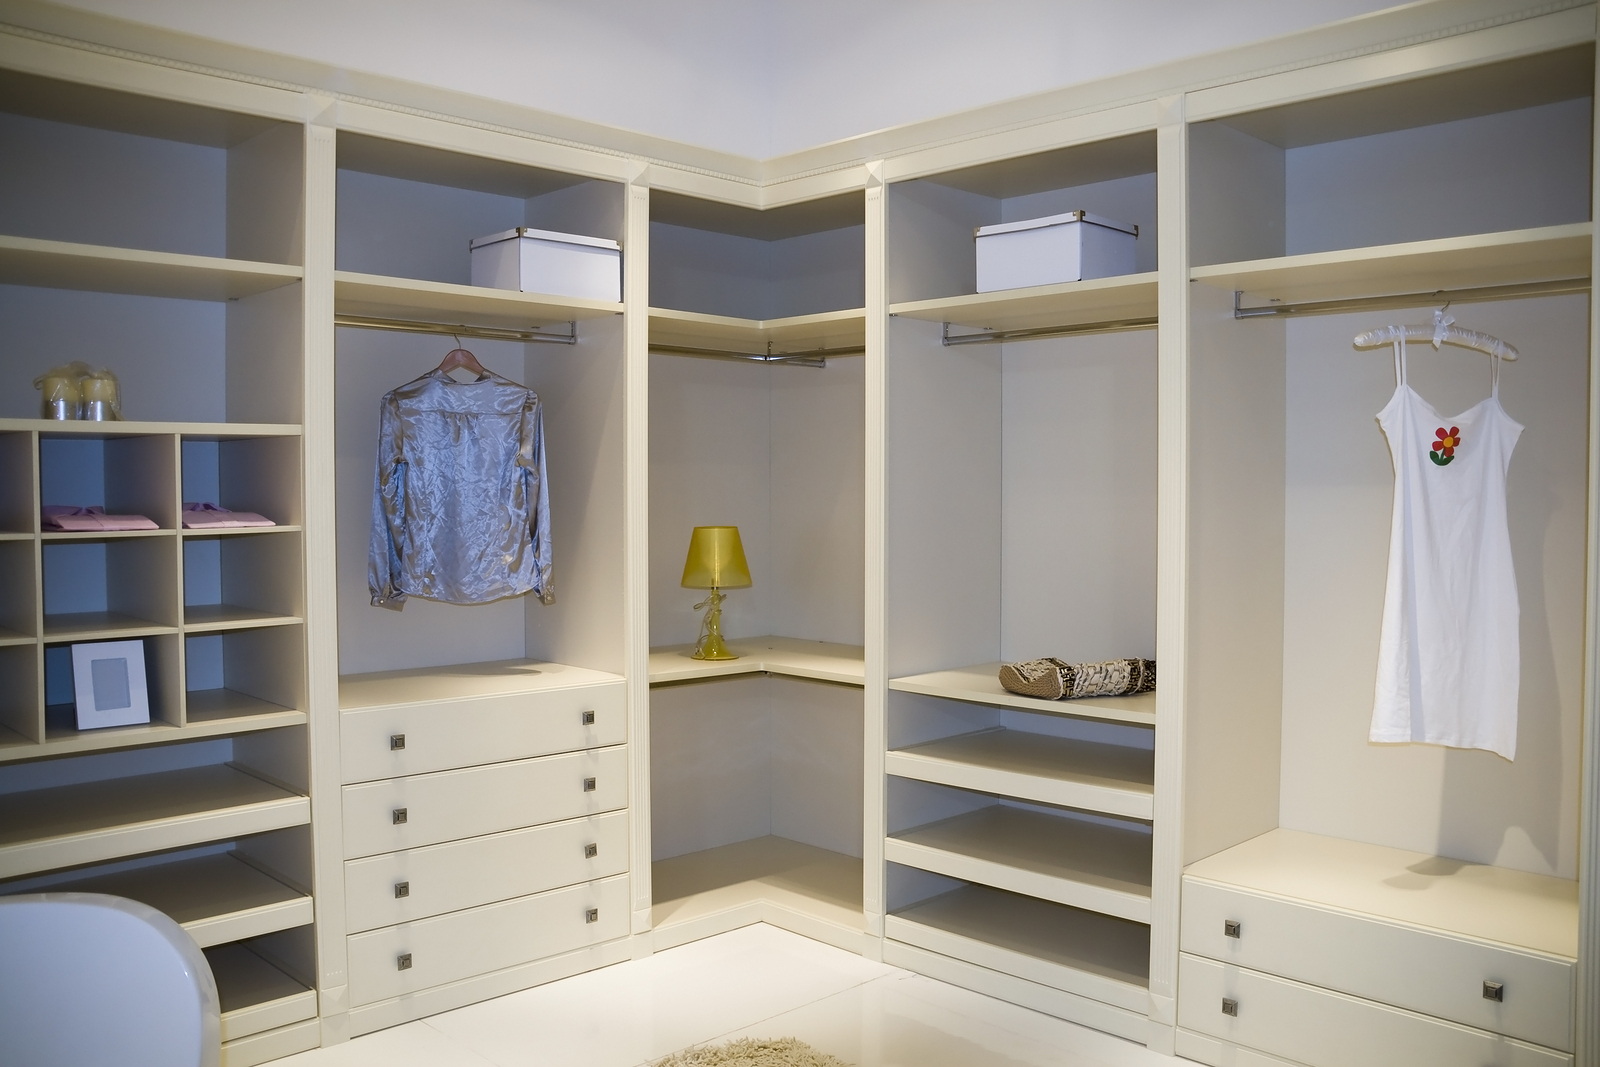 High Quality CLOSET ENGINEERSu0027 PROCESS U0026 GUARANTEE FOR YOUR CUSTOM CLOSET ORGANIZER. Nj  Closets